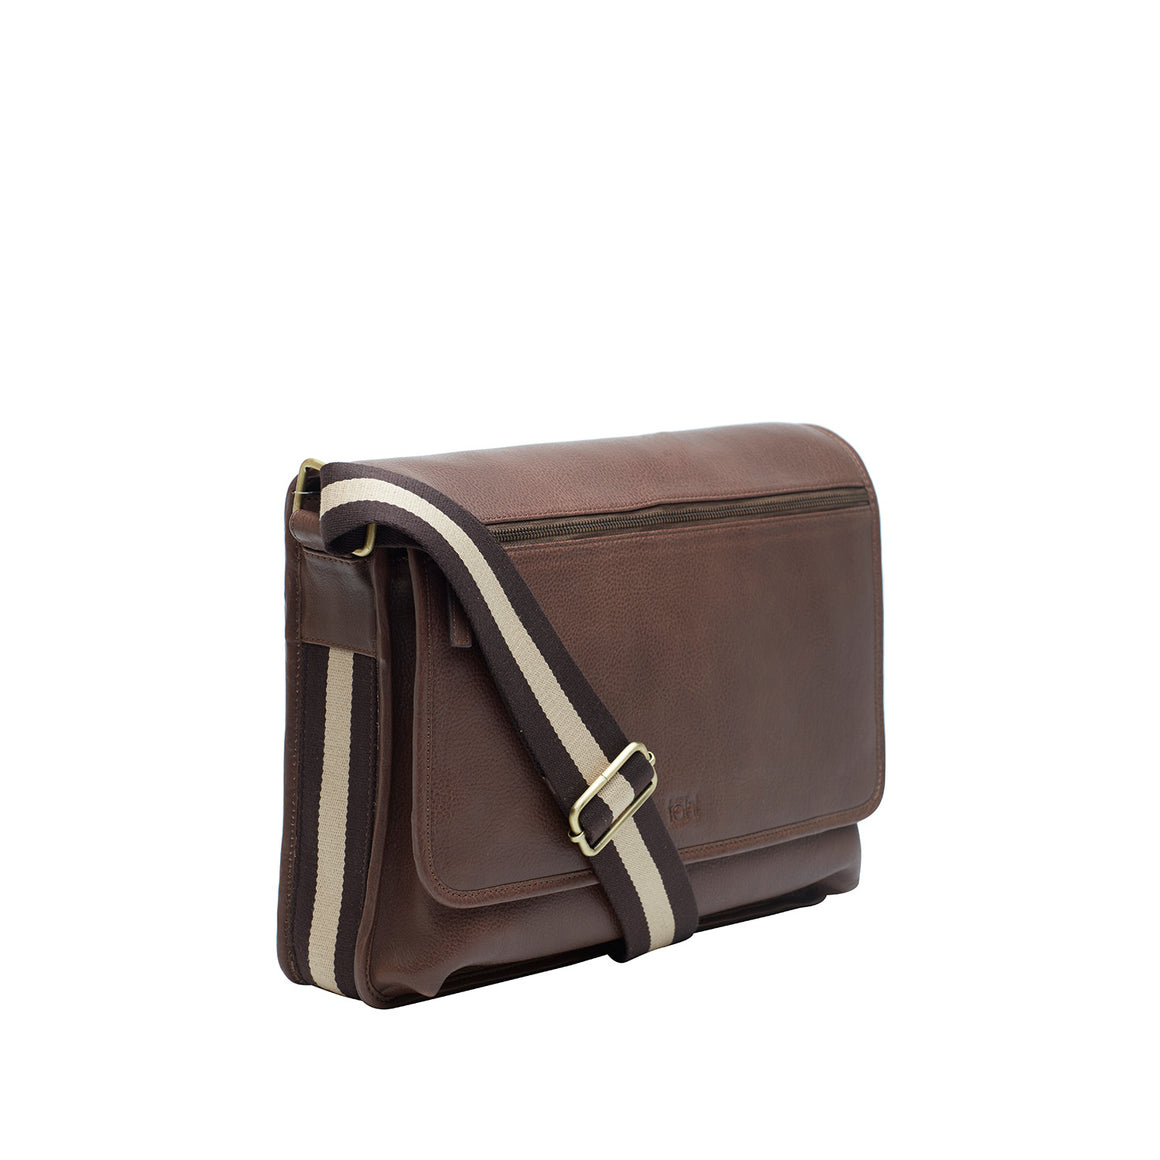 MS 0007 - TOHL VIELLA MEN'S CROSSBODY & MESSENGER - MUD